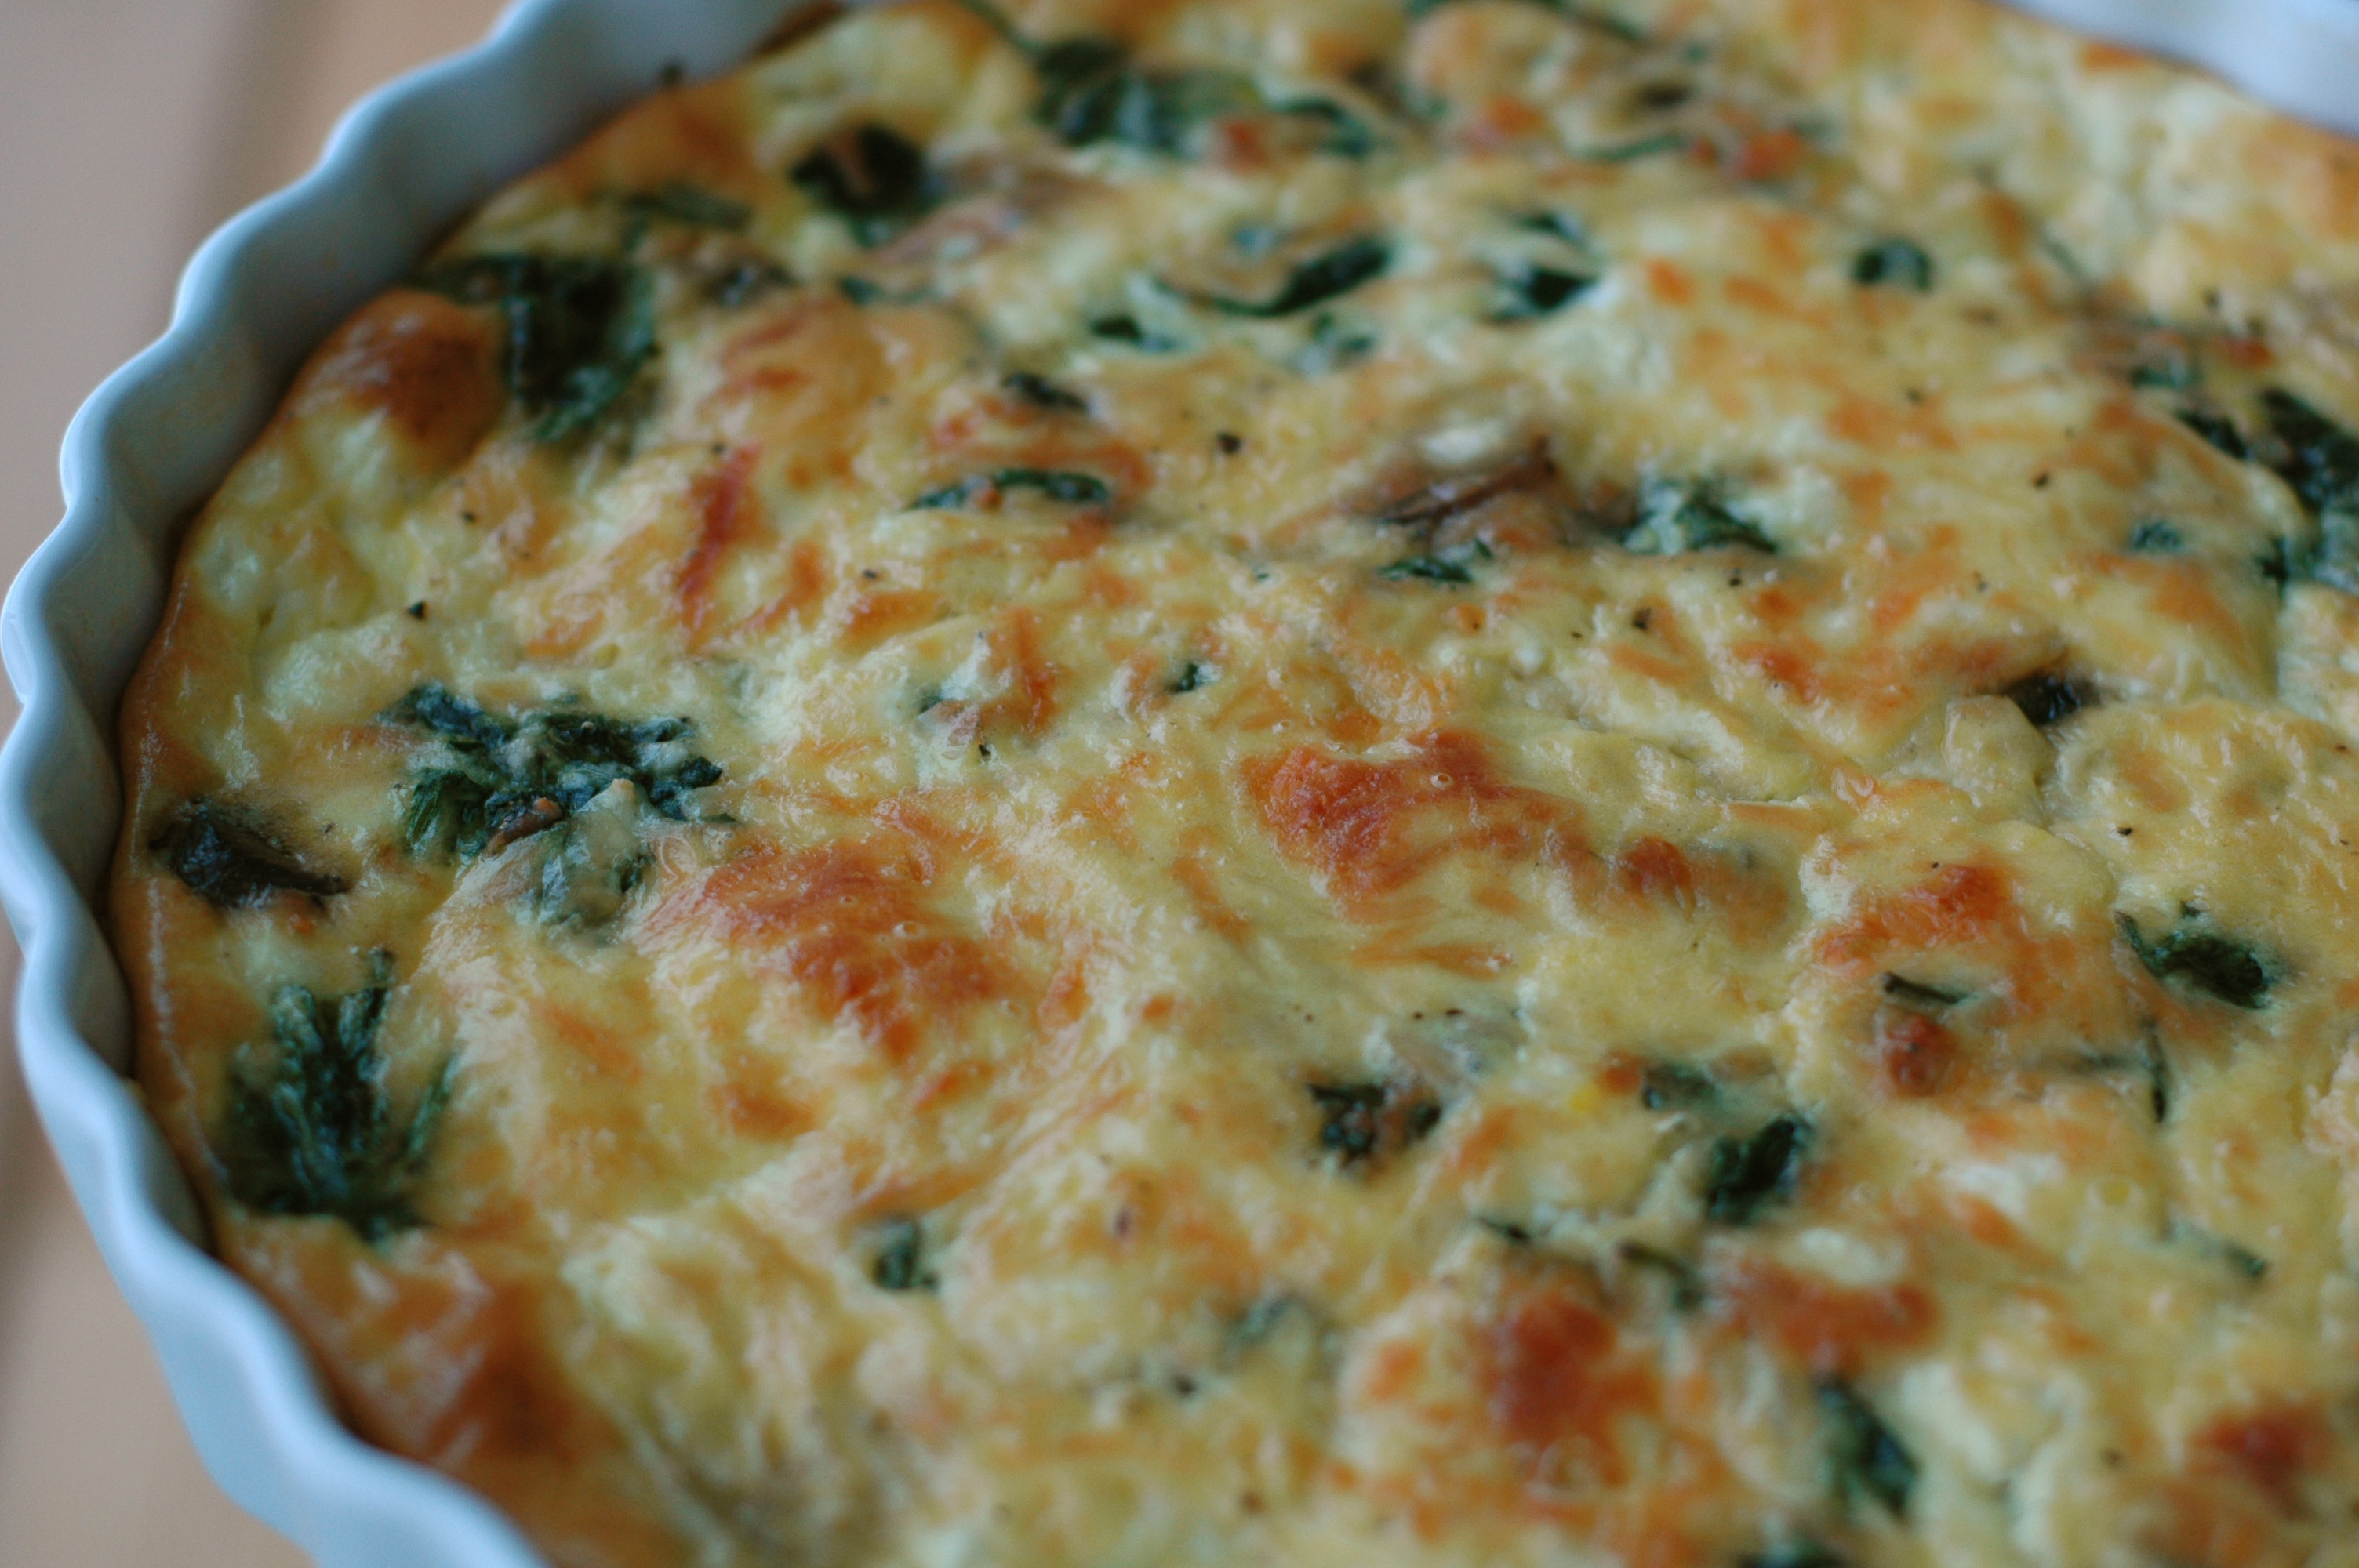 Spinach, Mushroom, and Feta Crustless Quiche - but i'm hungry